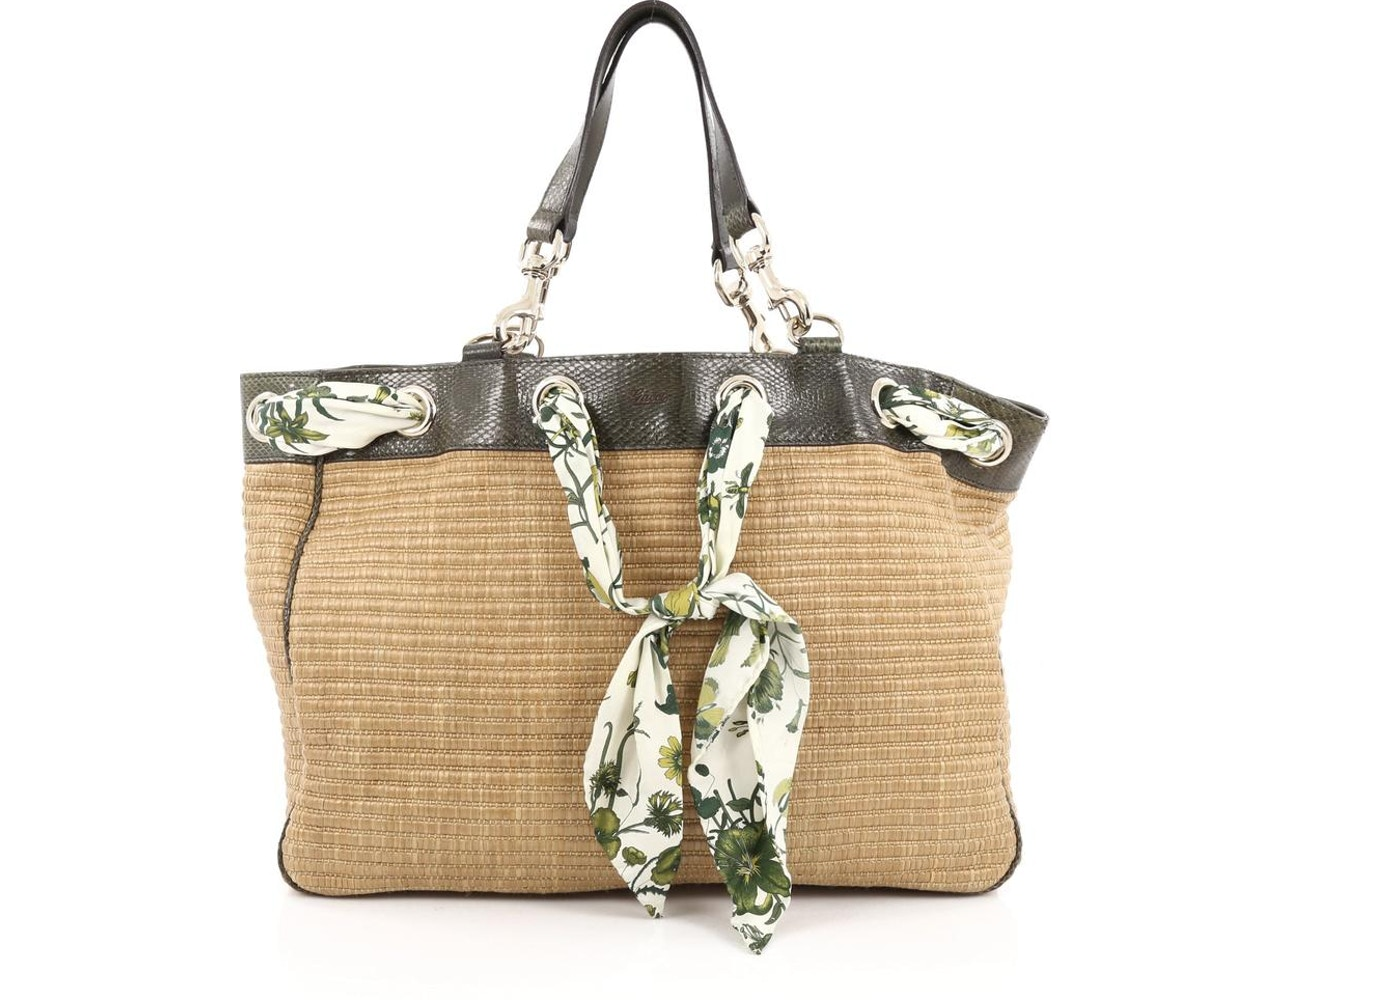 c05f3d9dc22 Gucci Positano Tote GG Scarf Interlaced at the Top Large Brown Green. GG  Scarf Interlaced at the Top Large Brown Green